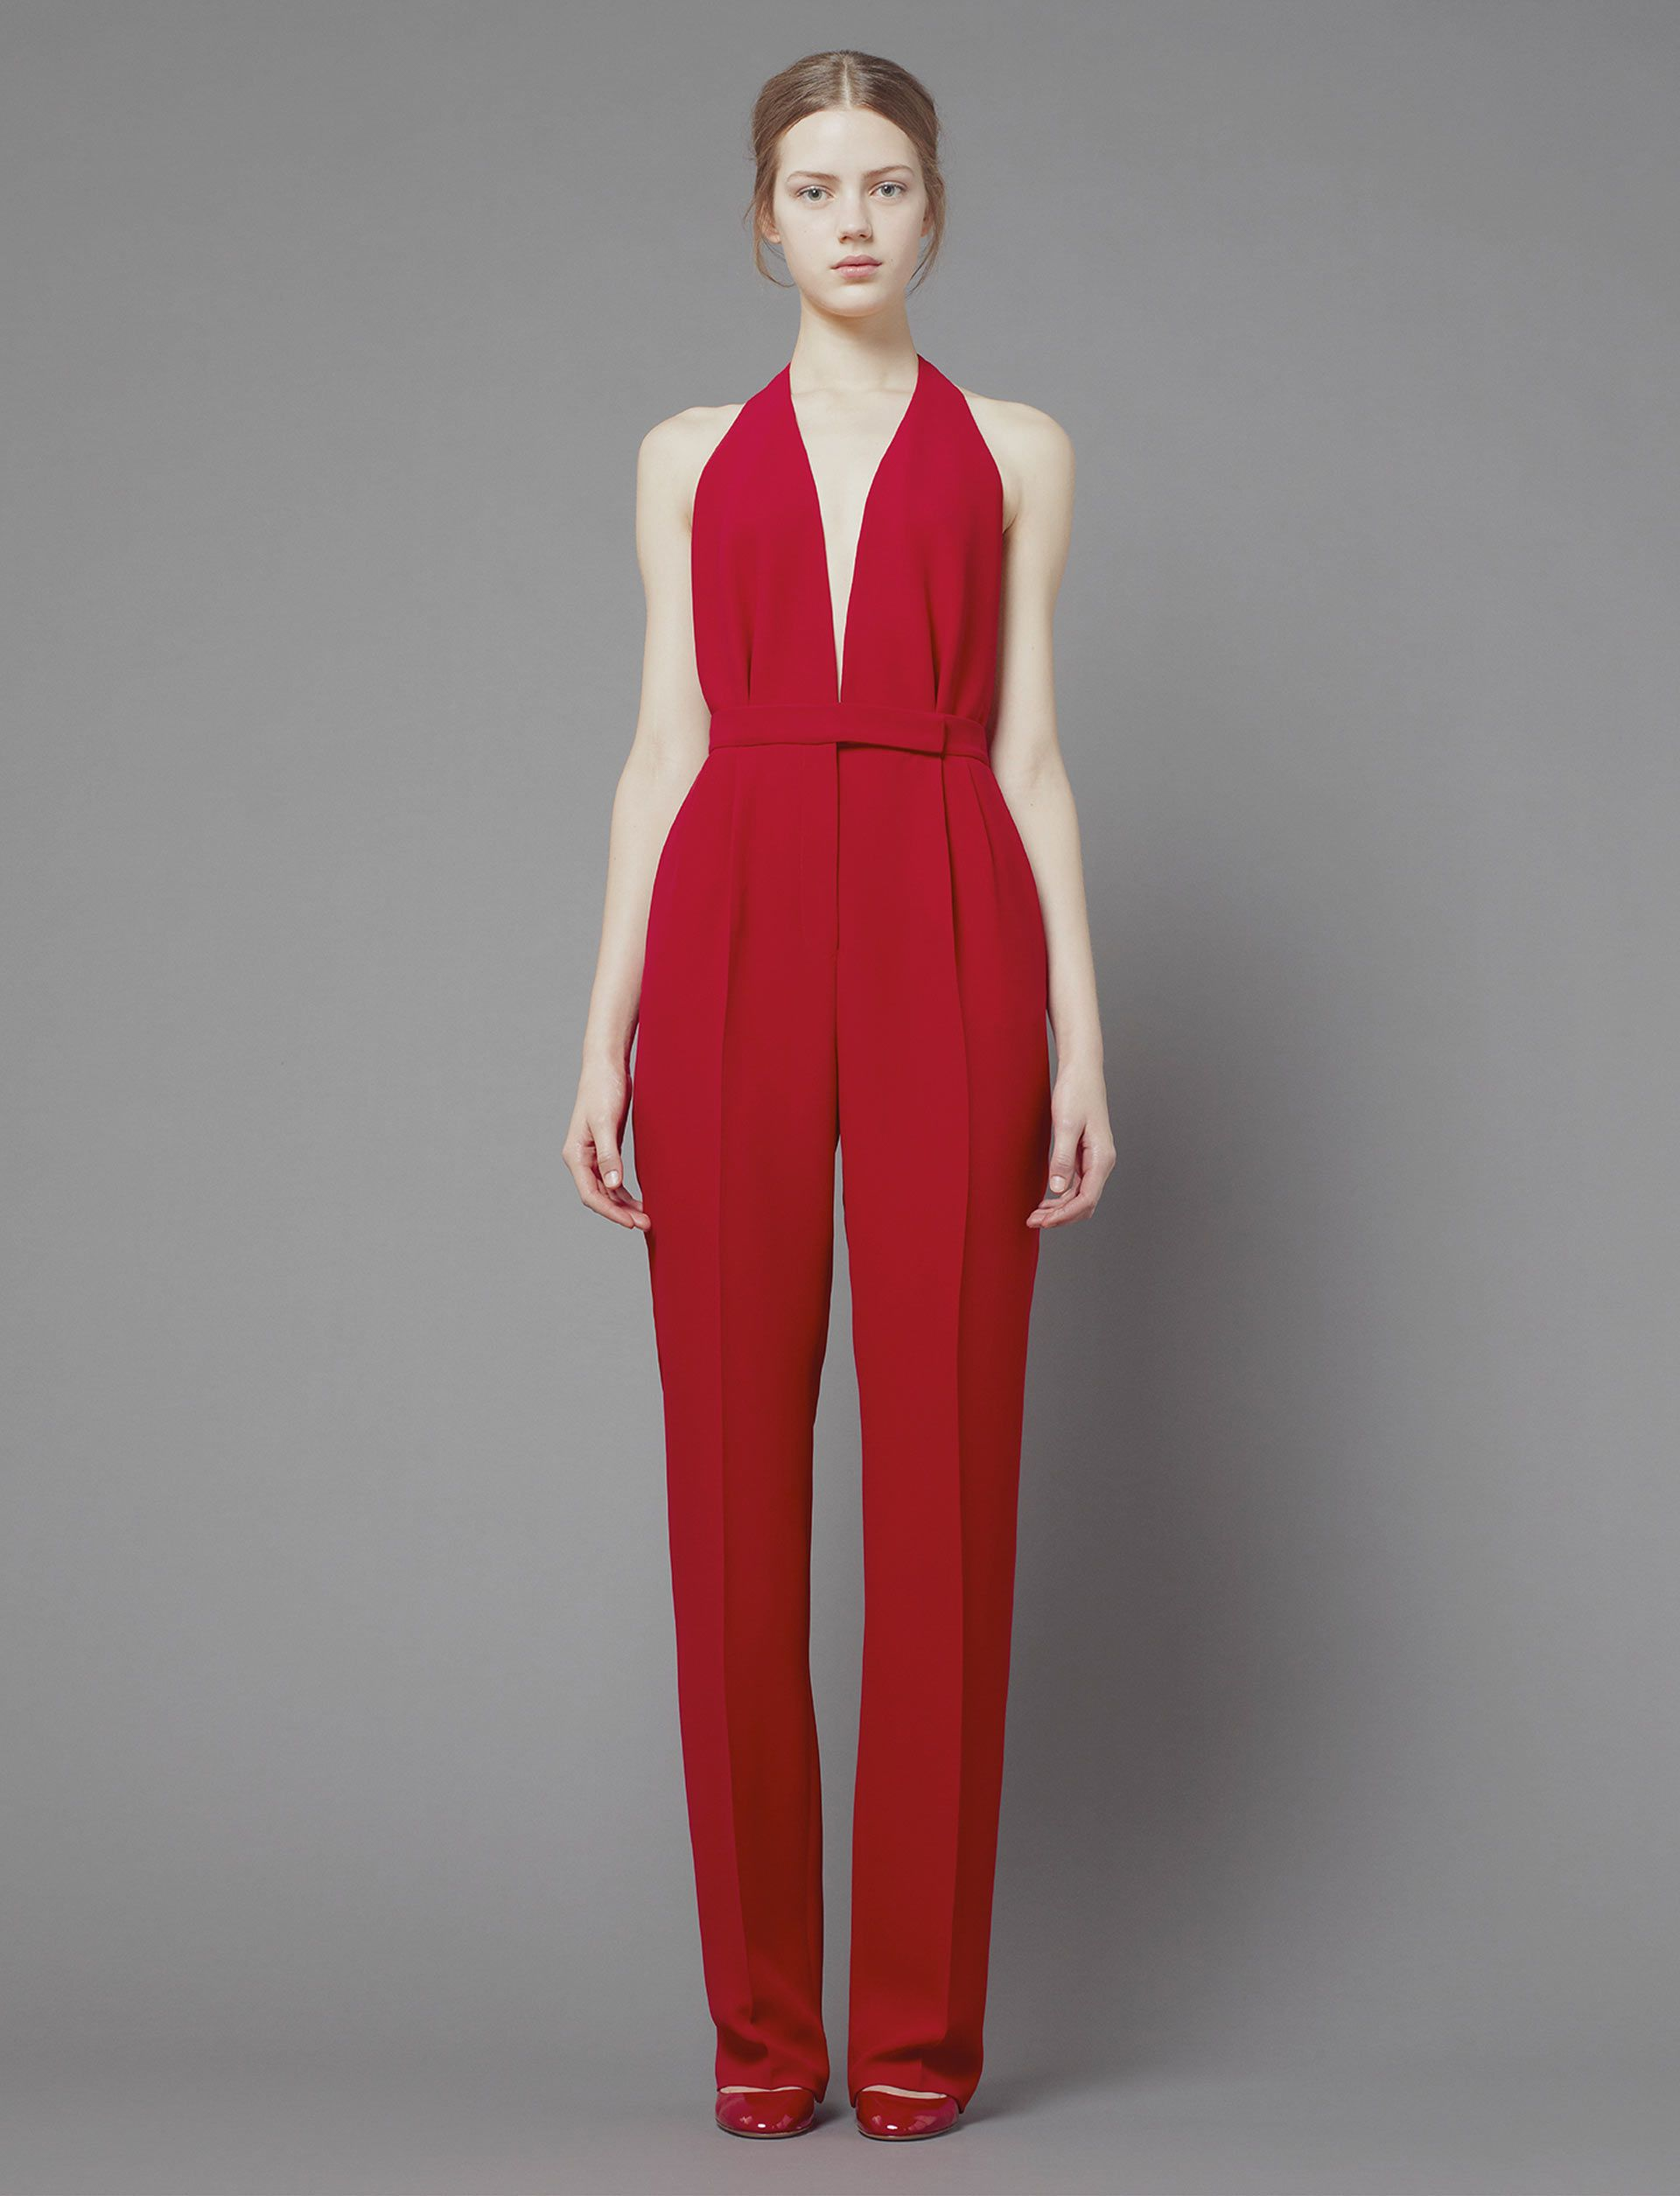 c92b201d62 Get the look for less! Shop jumpsuits at Lexi Drew! So many available in  Red   many other fall colors!